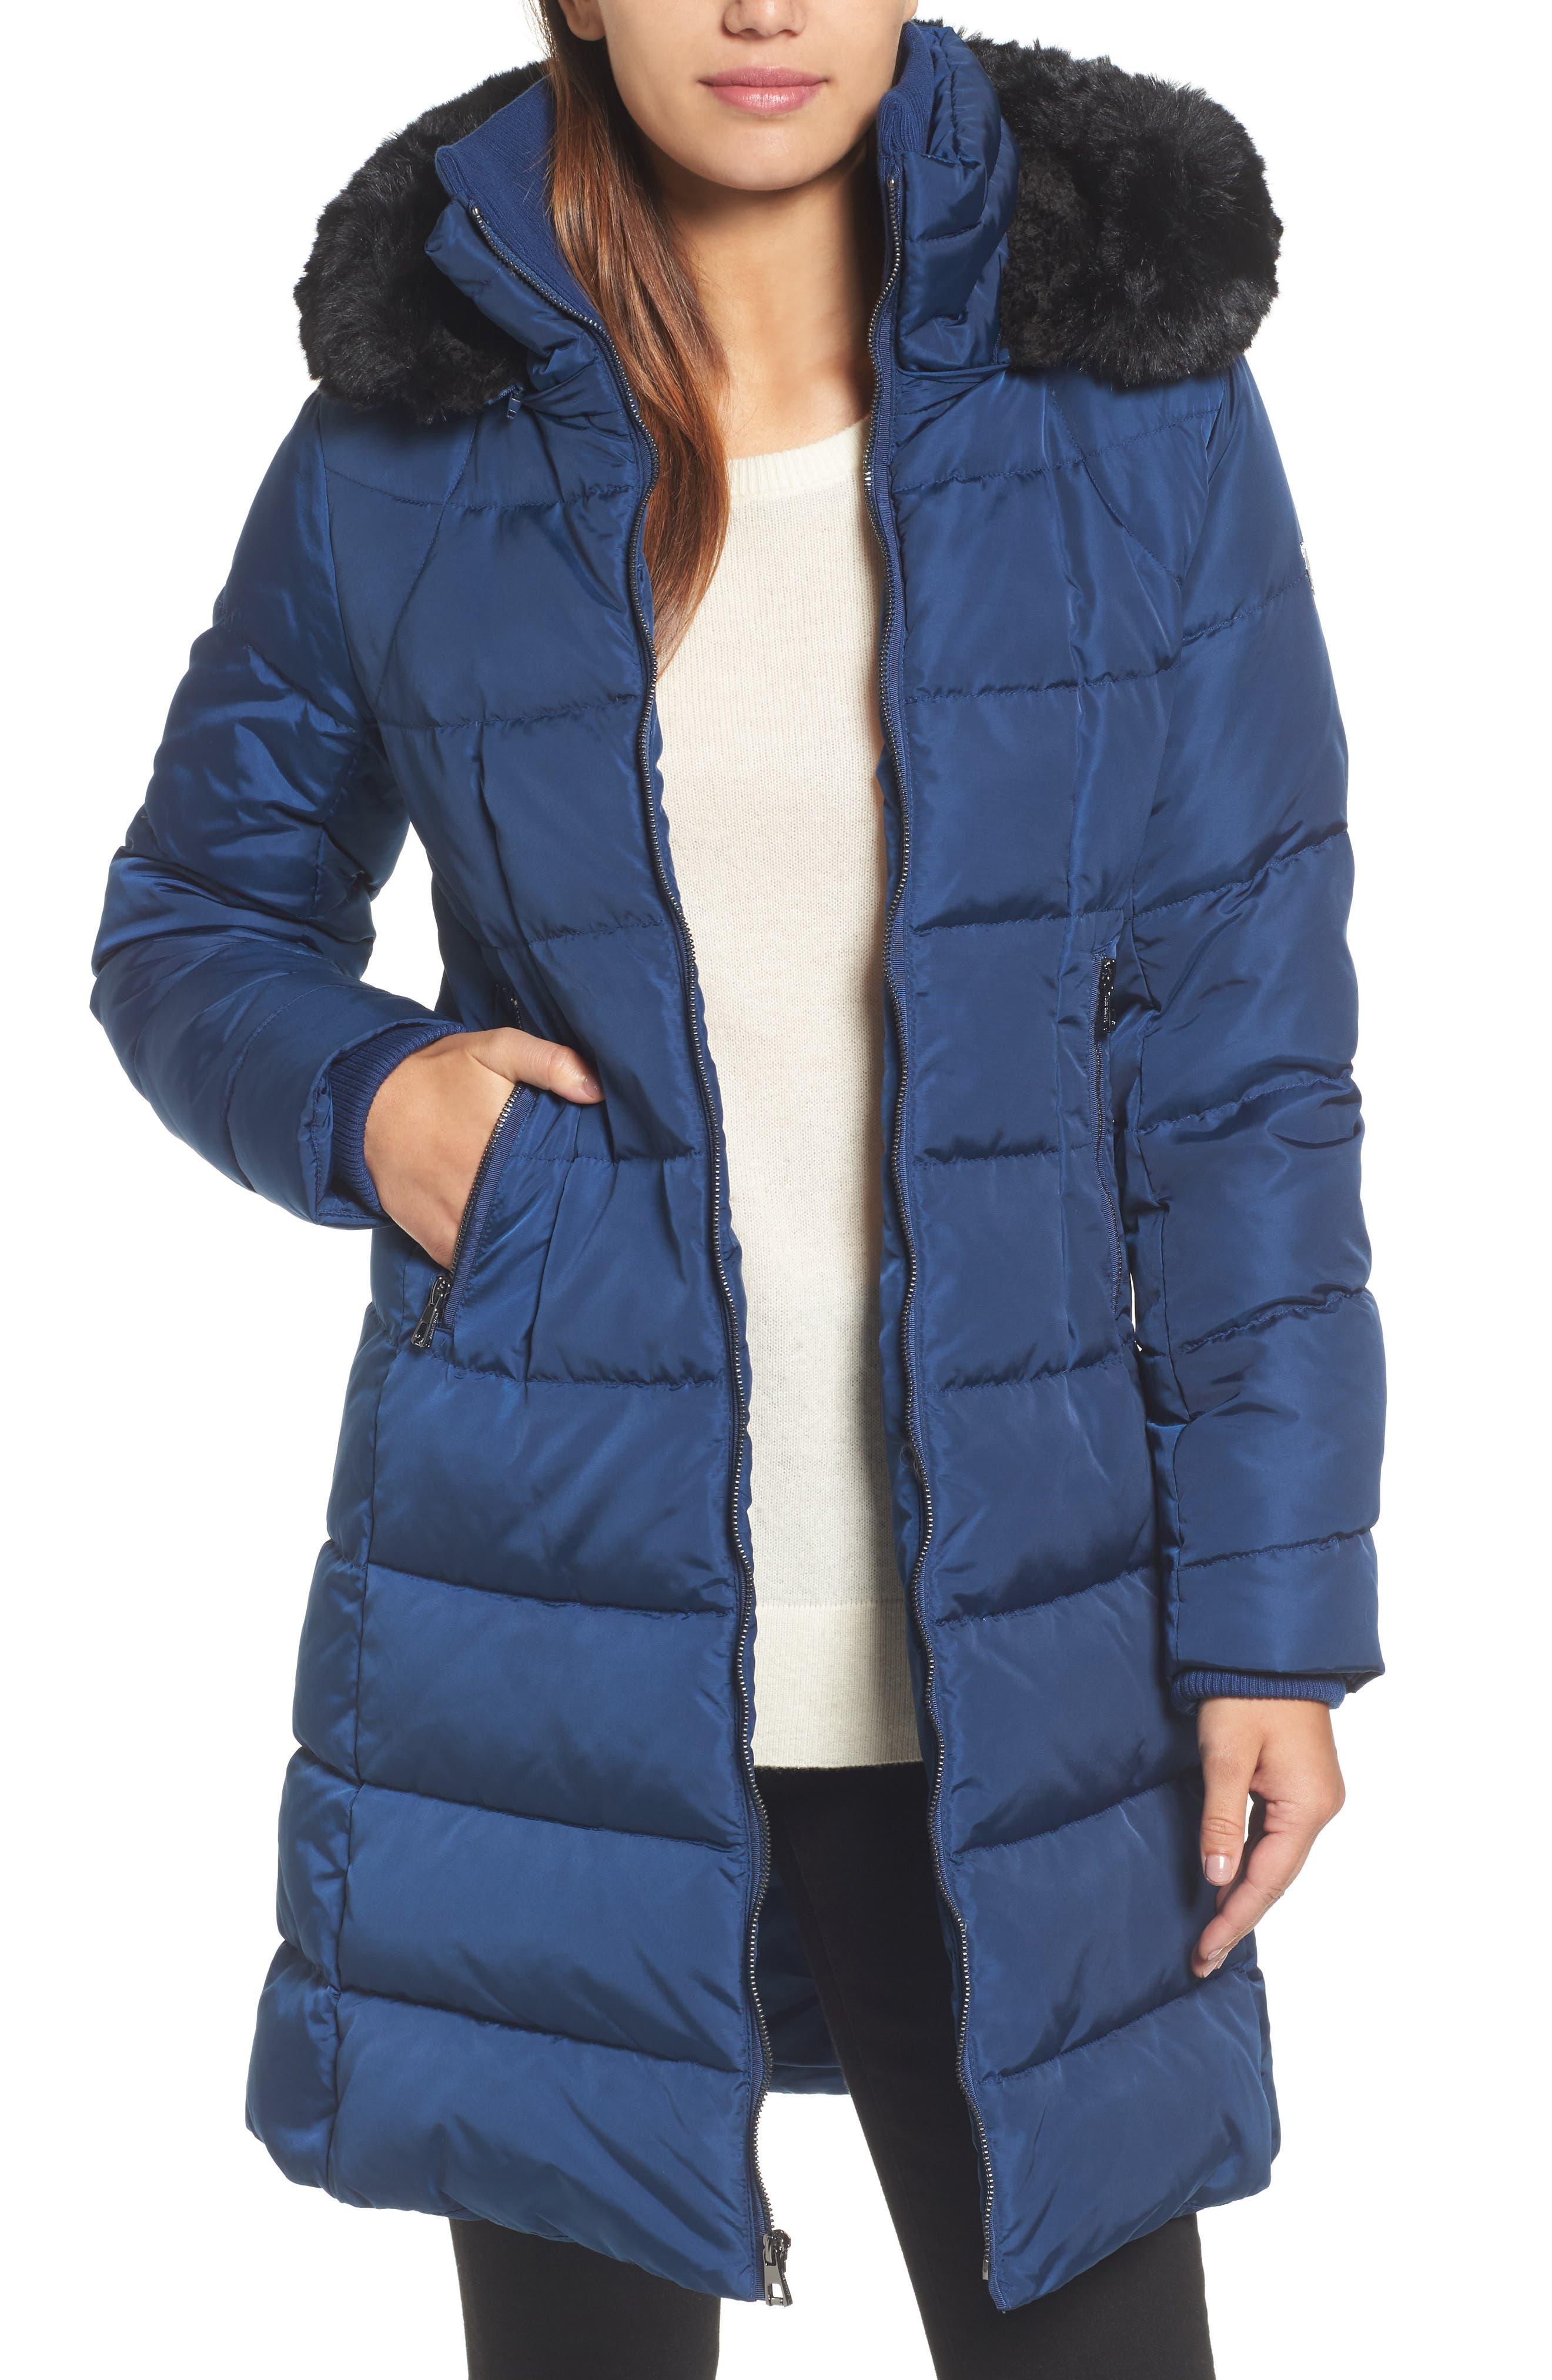 Main Image - Vince Camuto Down & Feather Fill Coat with Faux Fur Trim Hood